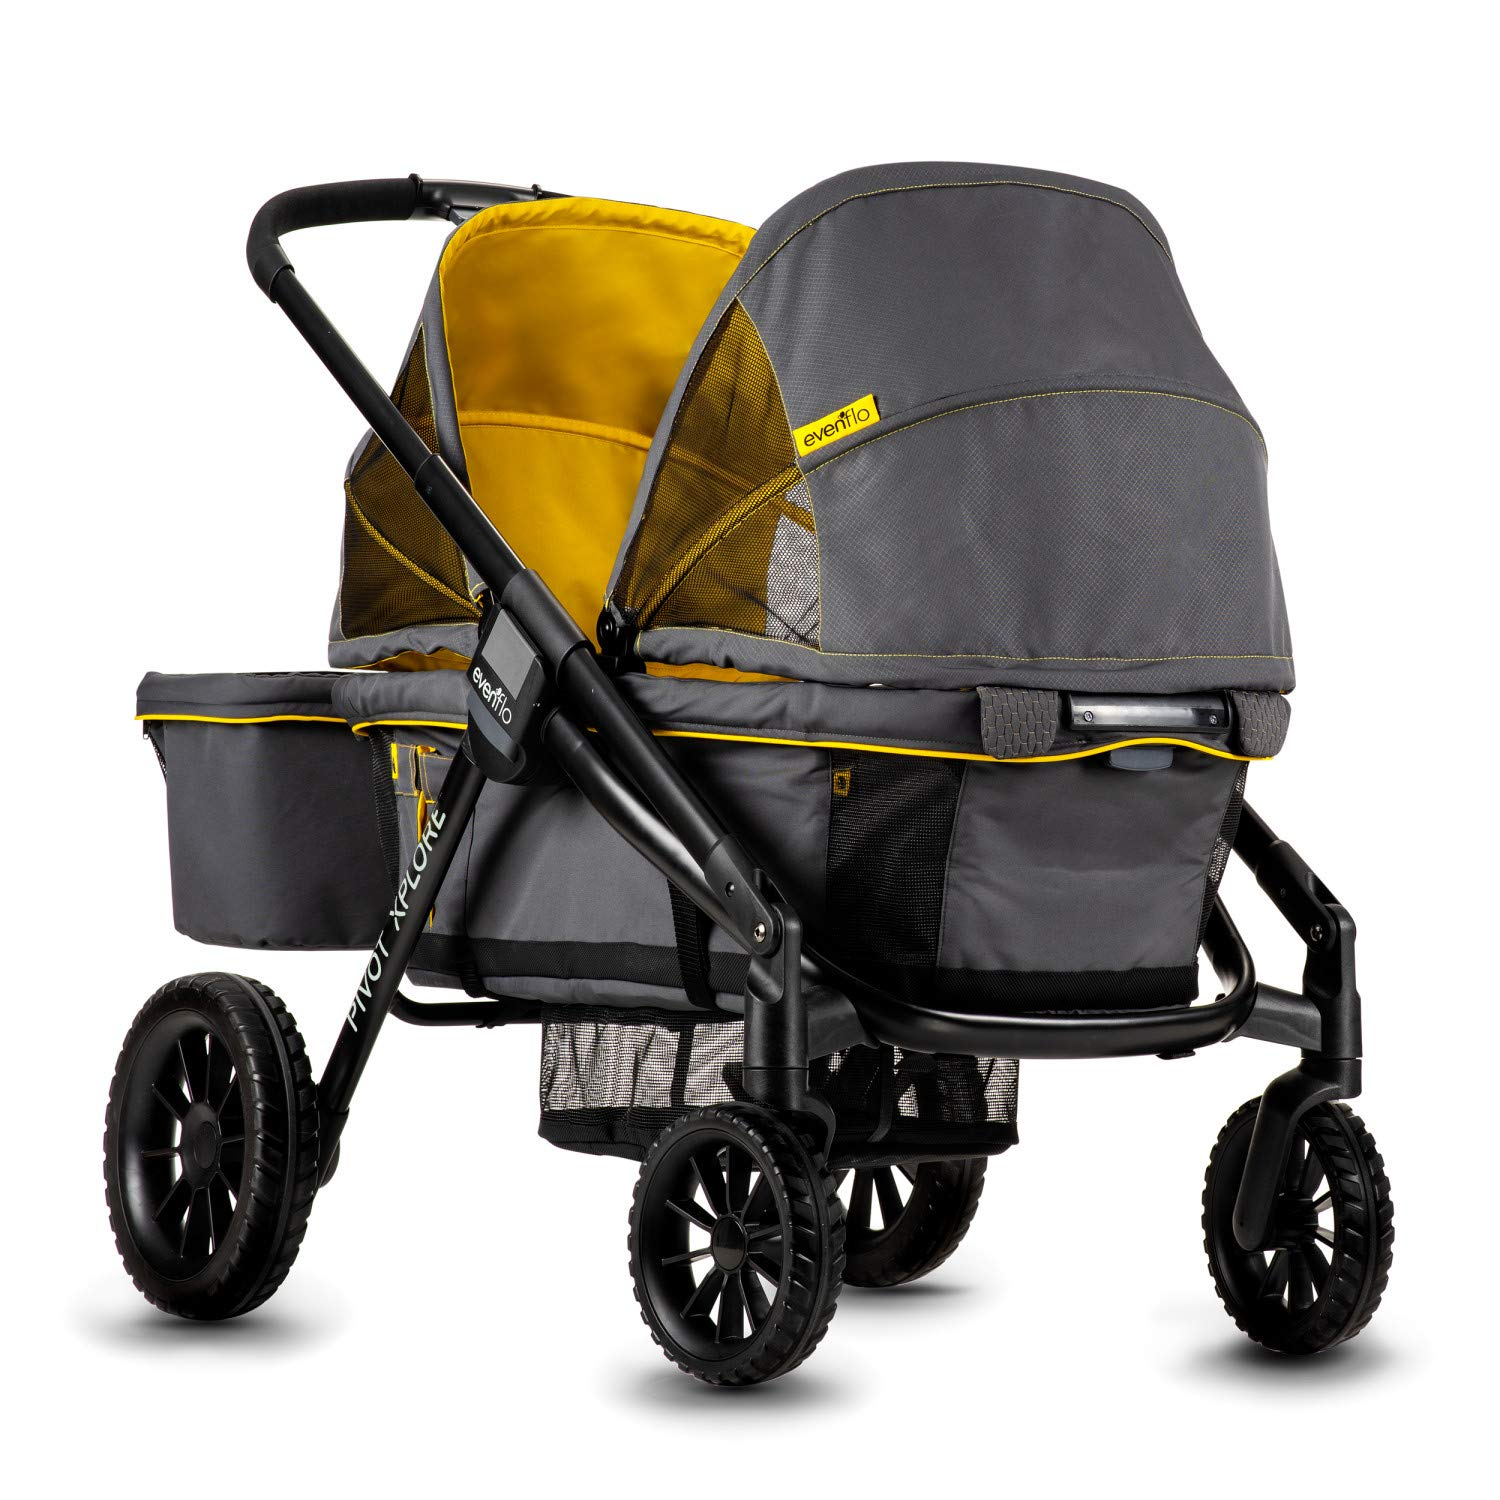 Pivot Xplore All-Terrain stroller wagon